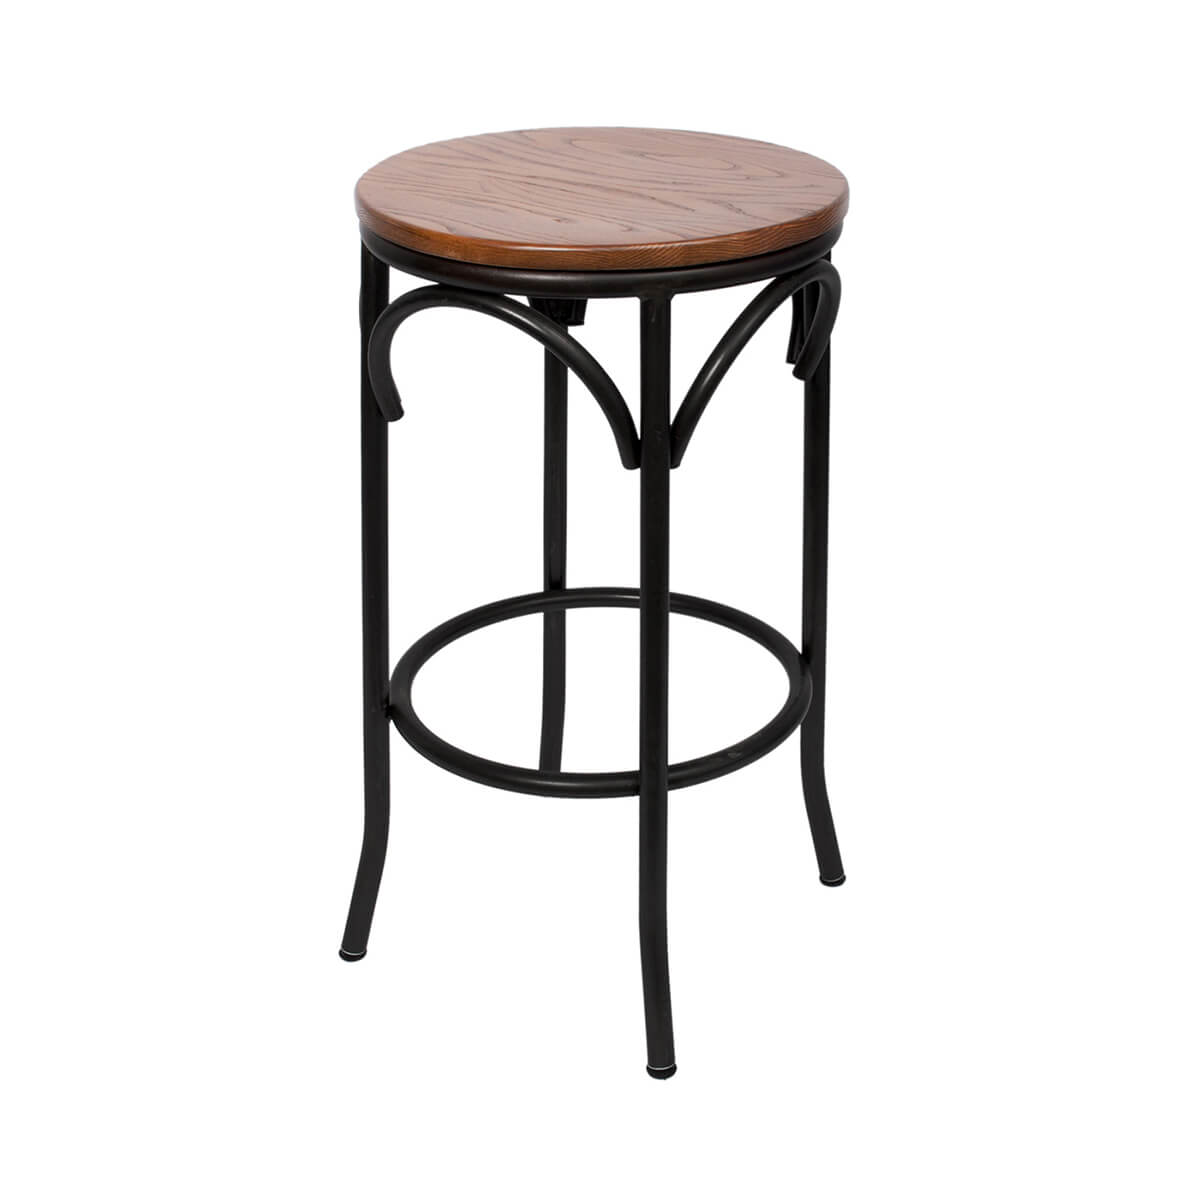 _0000s_0026_Henry Backless Barstool